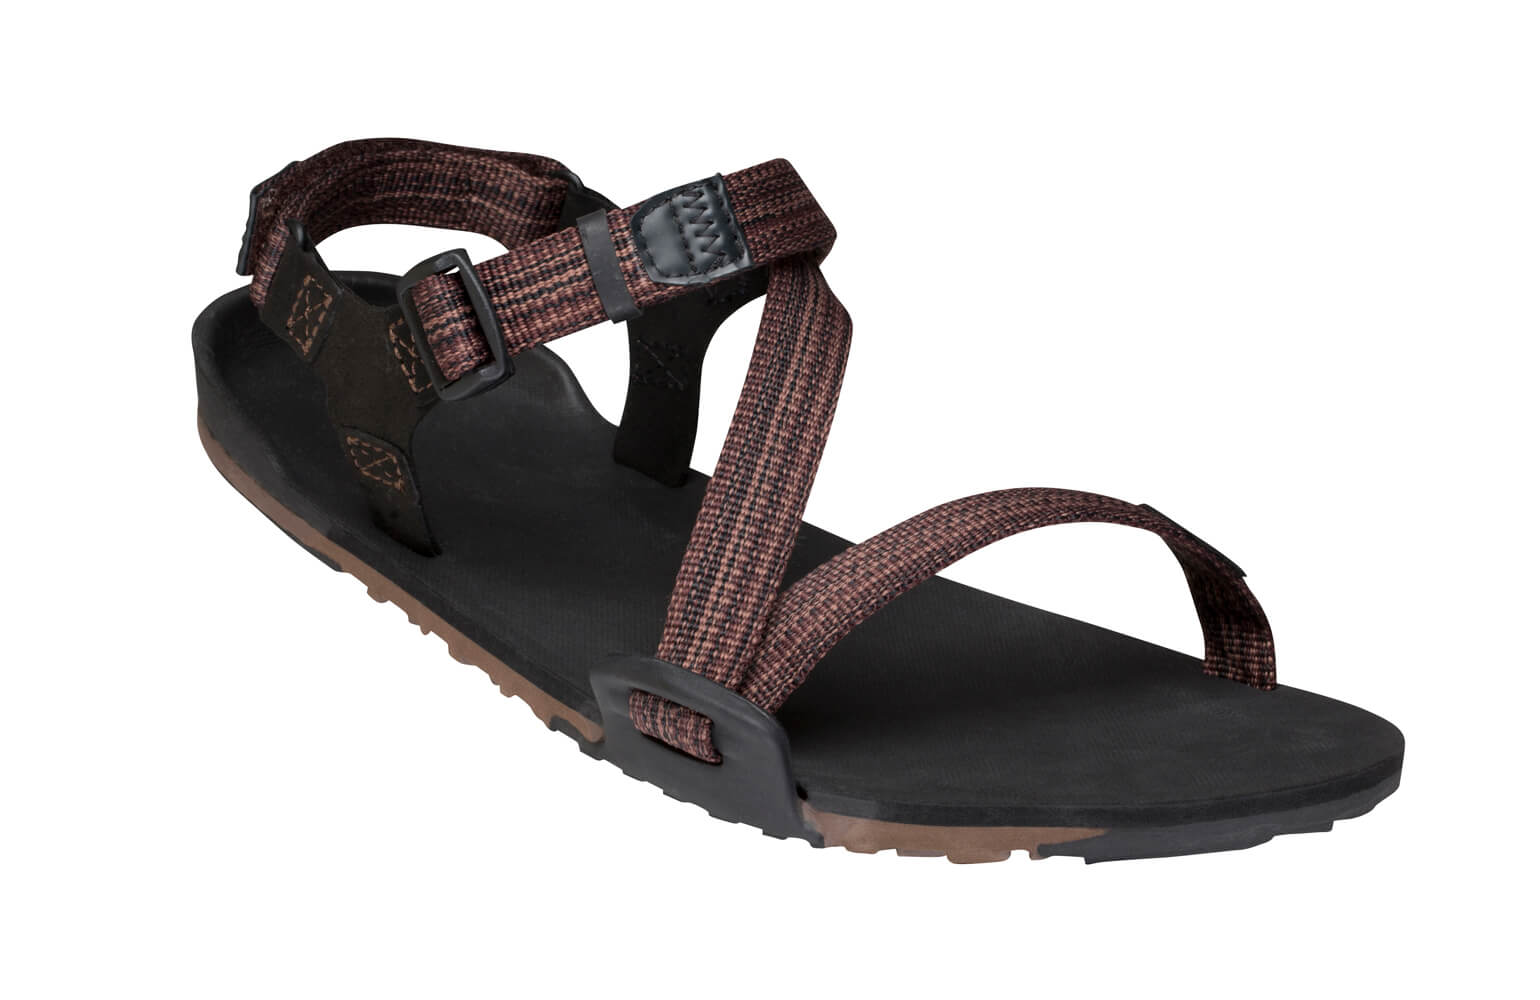 Teva Original Universal Mens 10 Sandals Original Sandals Water Shoes Black Bracing Up The Whole System And Strengthening It Men's Shoes